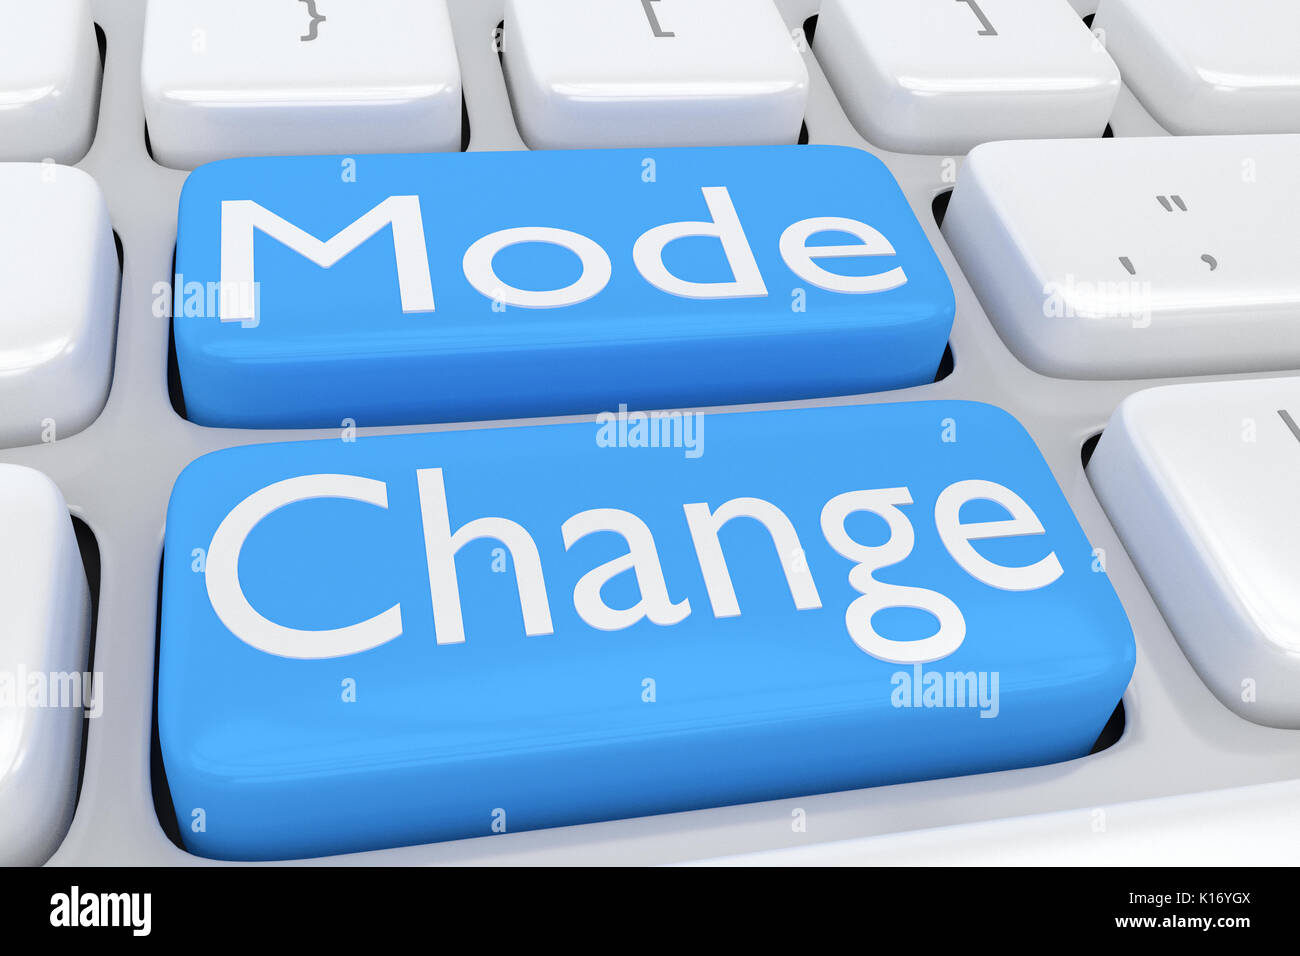 3D illustration of computer keyboard with the script 'Mode Change' on two adjacent pale blue buttons - Stock Image